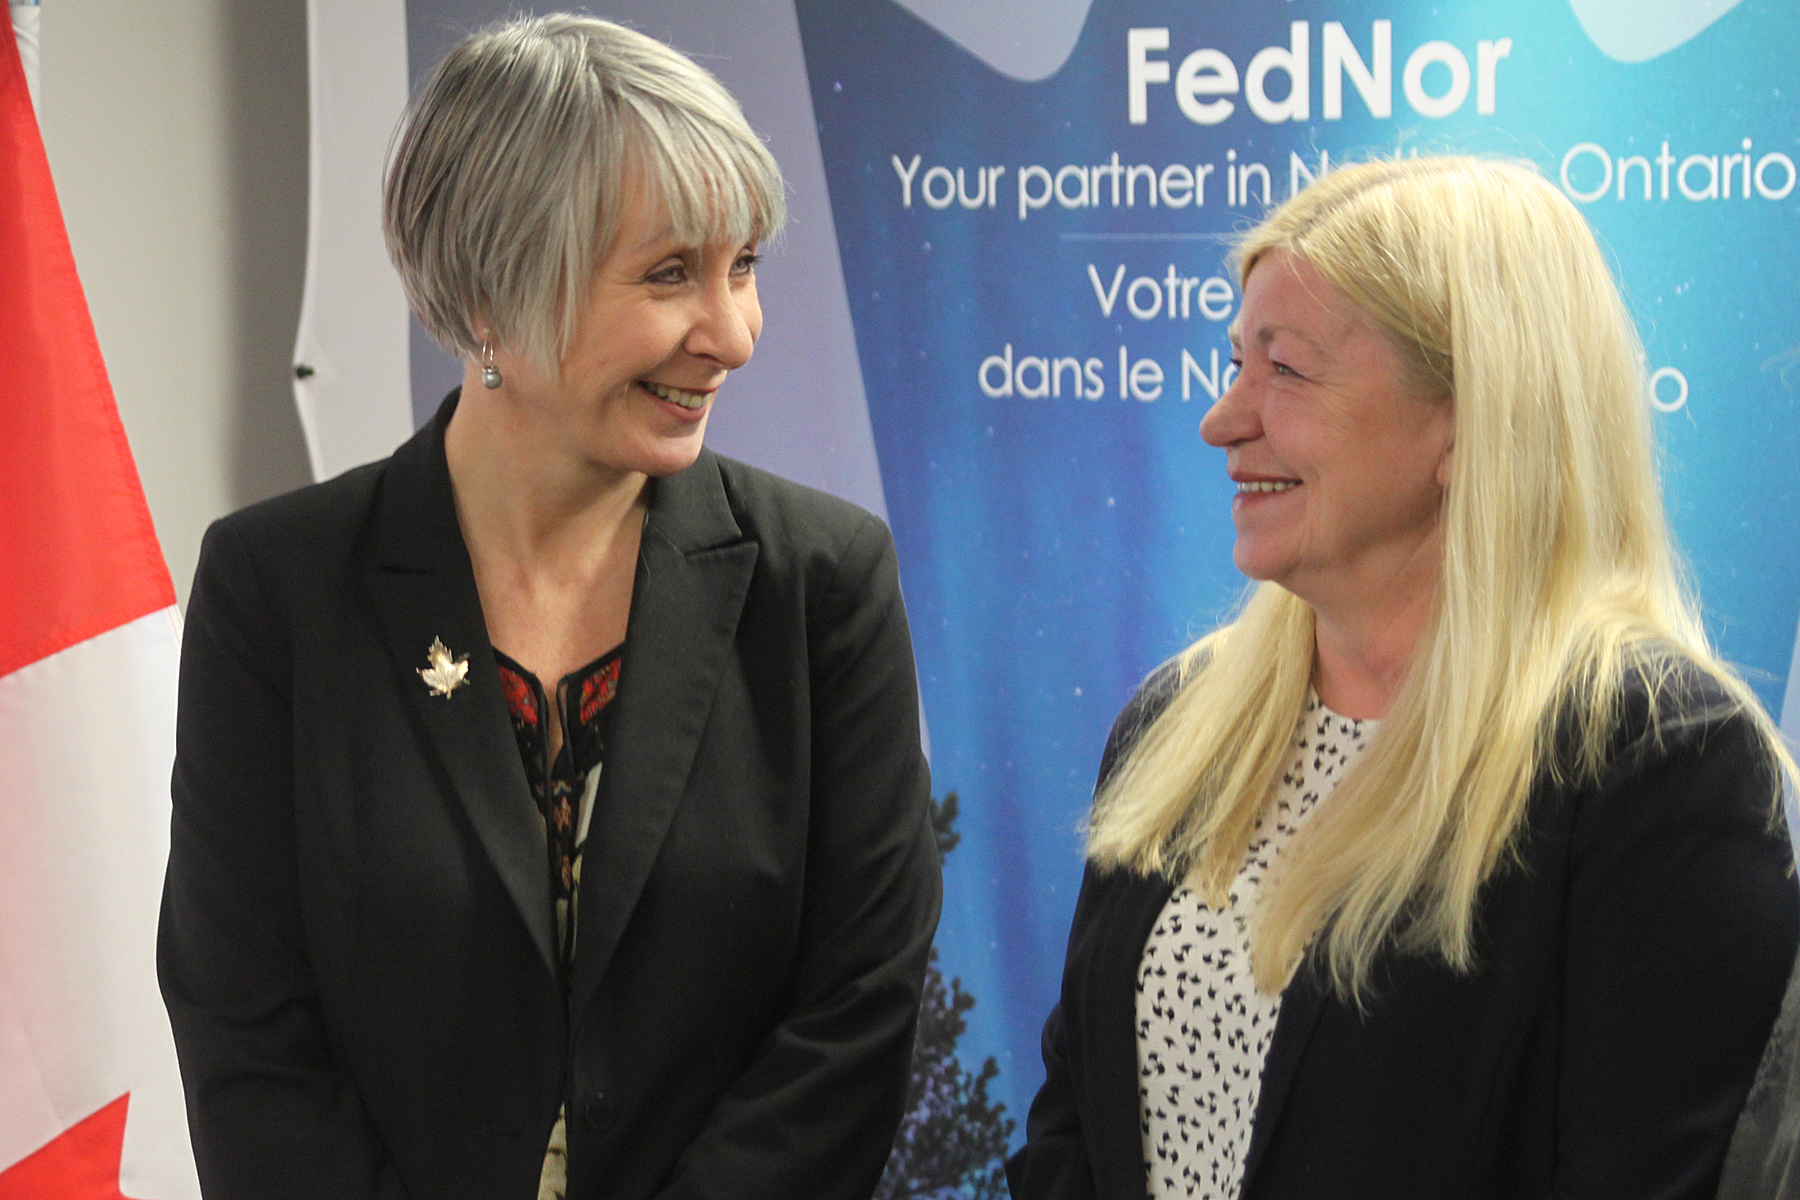 Northern Ontario Angel Investment Group Gets Federal Backing